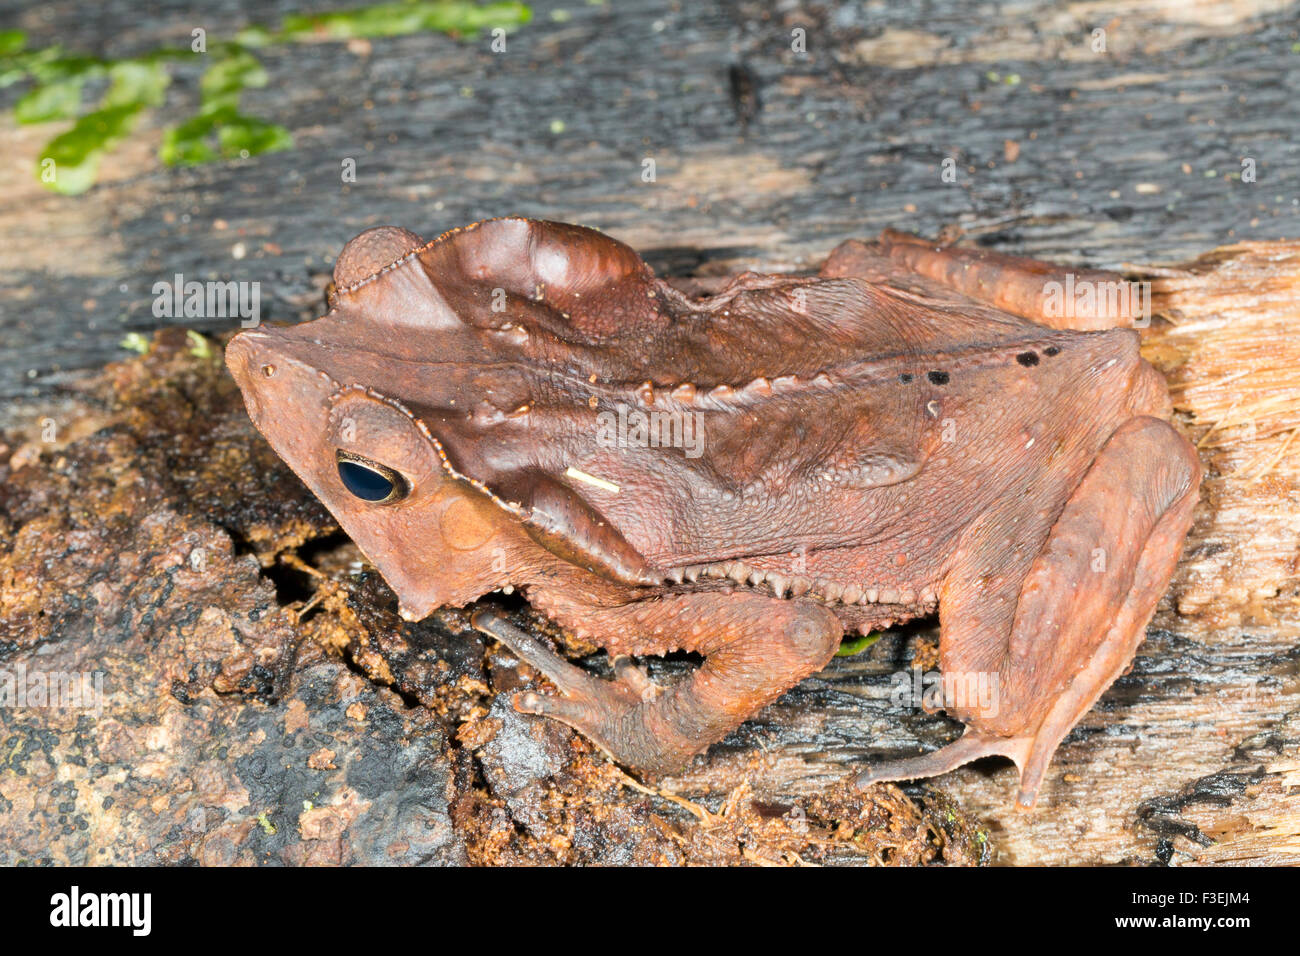 Crested Forest Toad (Rhinella dapsilis) on the rainforest floor in Ecuador - Stock Image